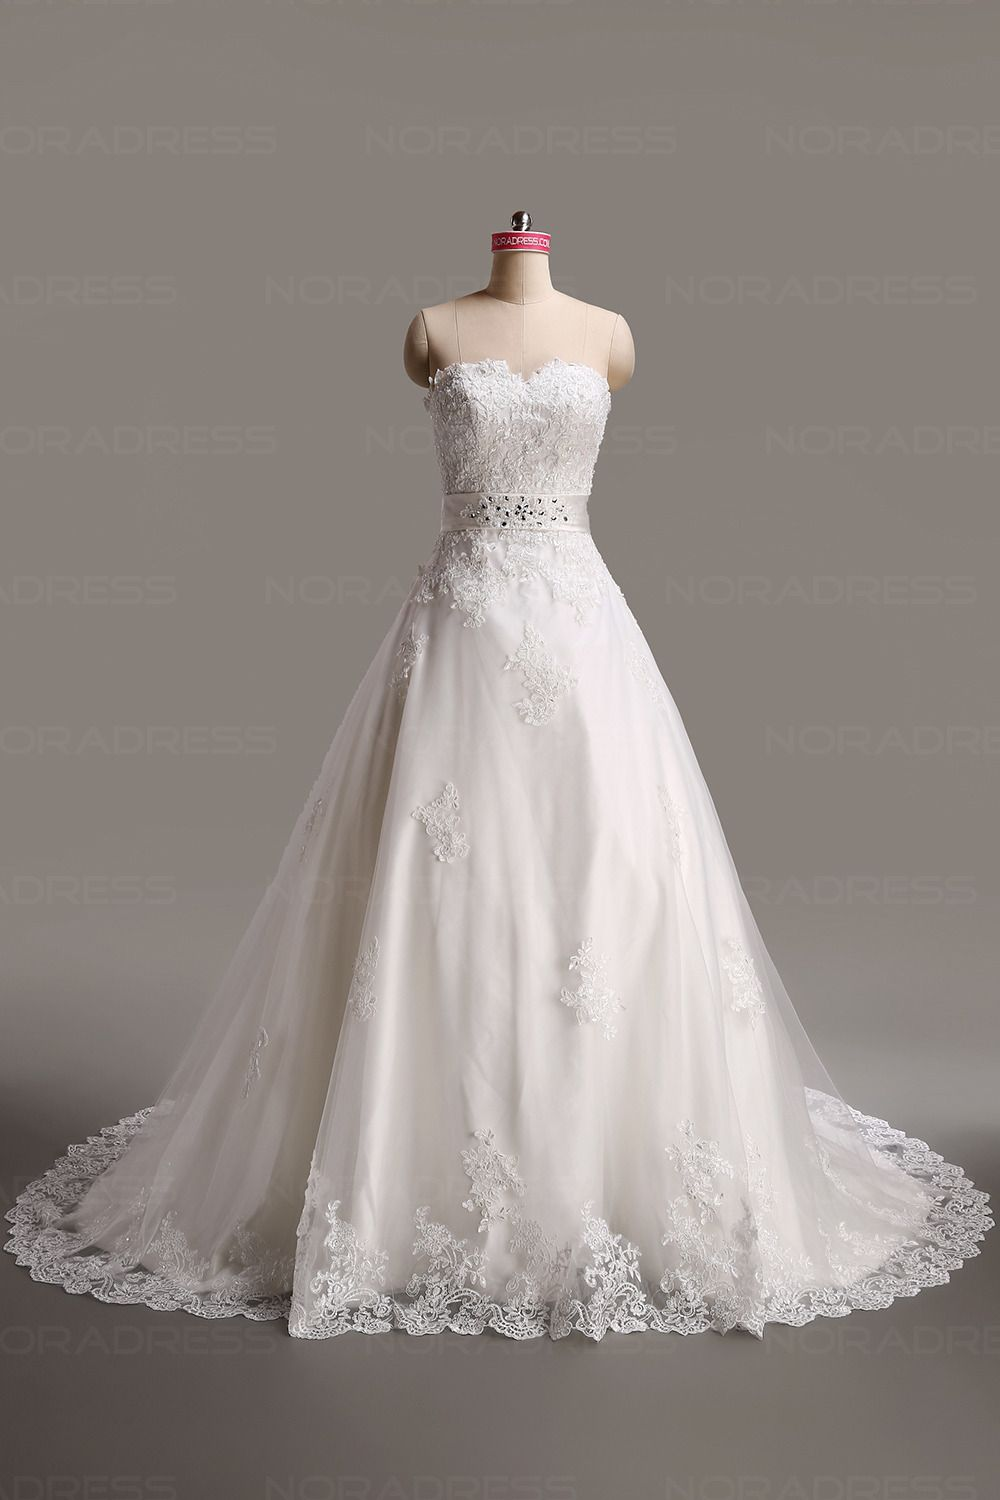 6bc041410 Vestidos de noiva Até ao chão Tecido Transparente Flor do laço Cetim |  Vestidos de Noiva | Wedding dresses, Cheap wedding dresses online, Cheap  wedding ...